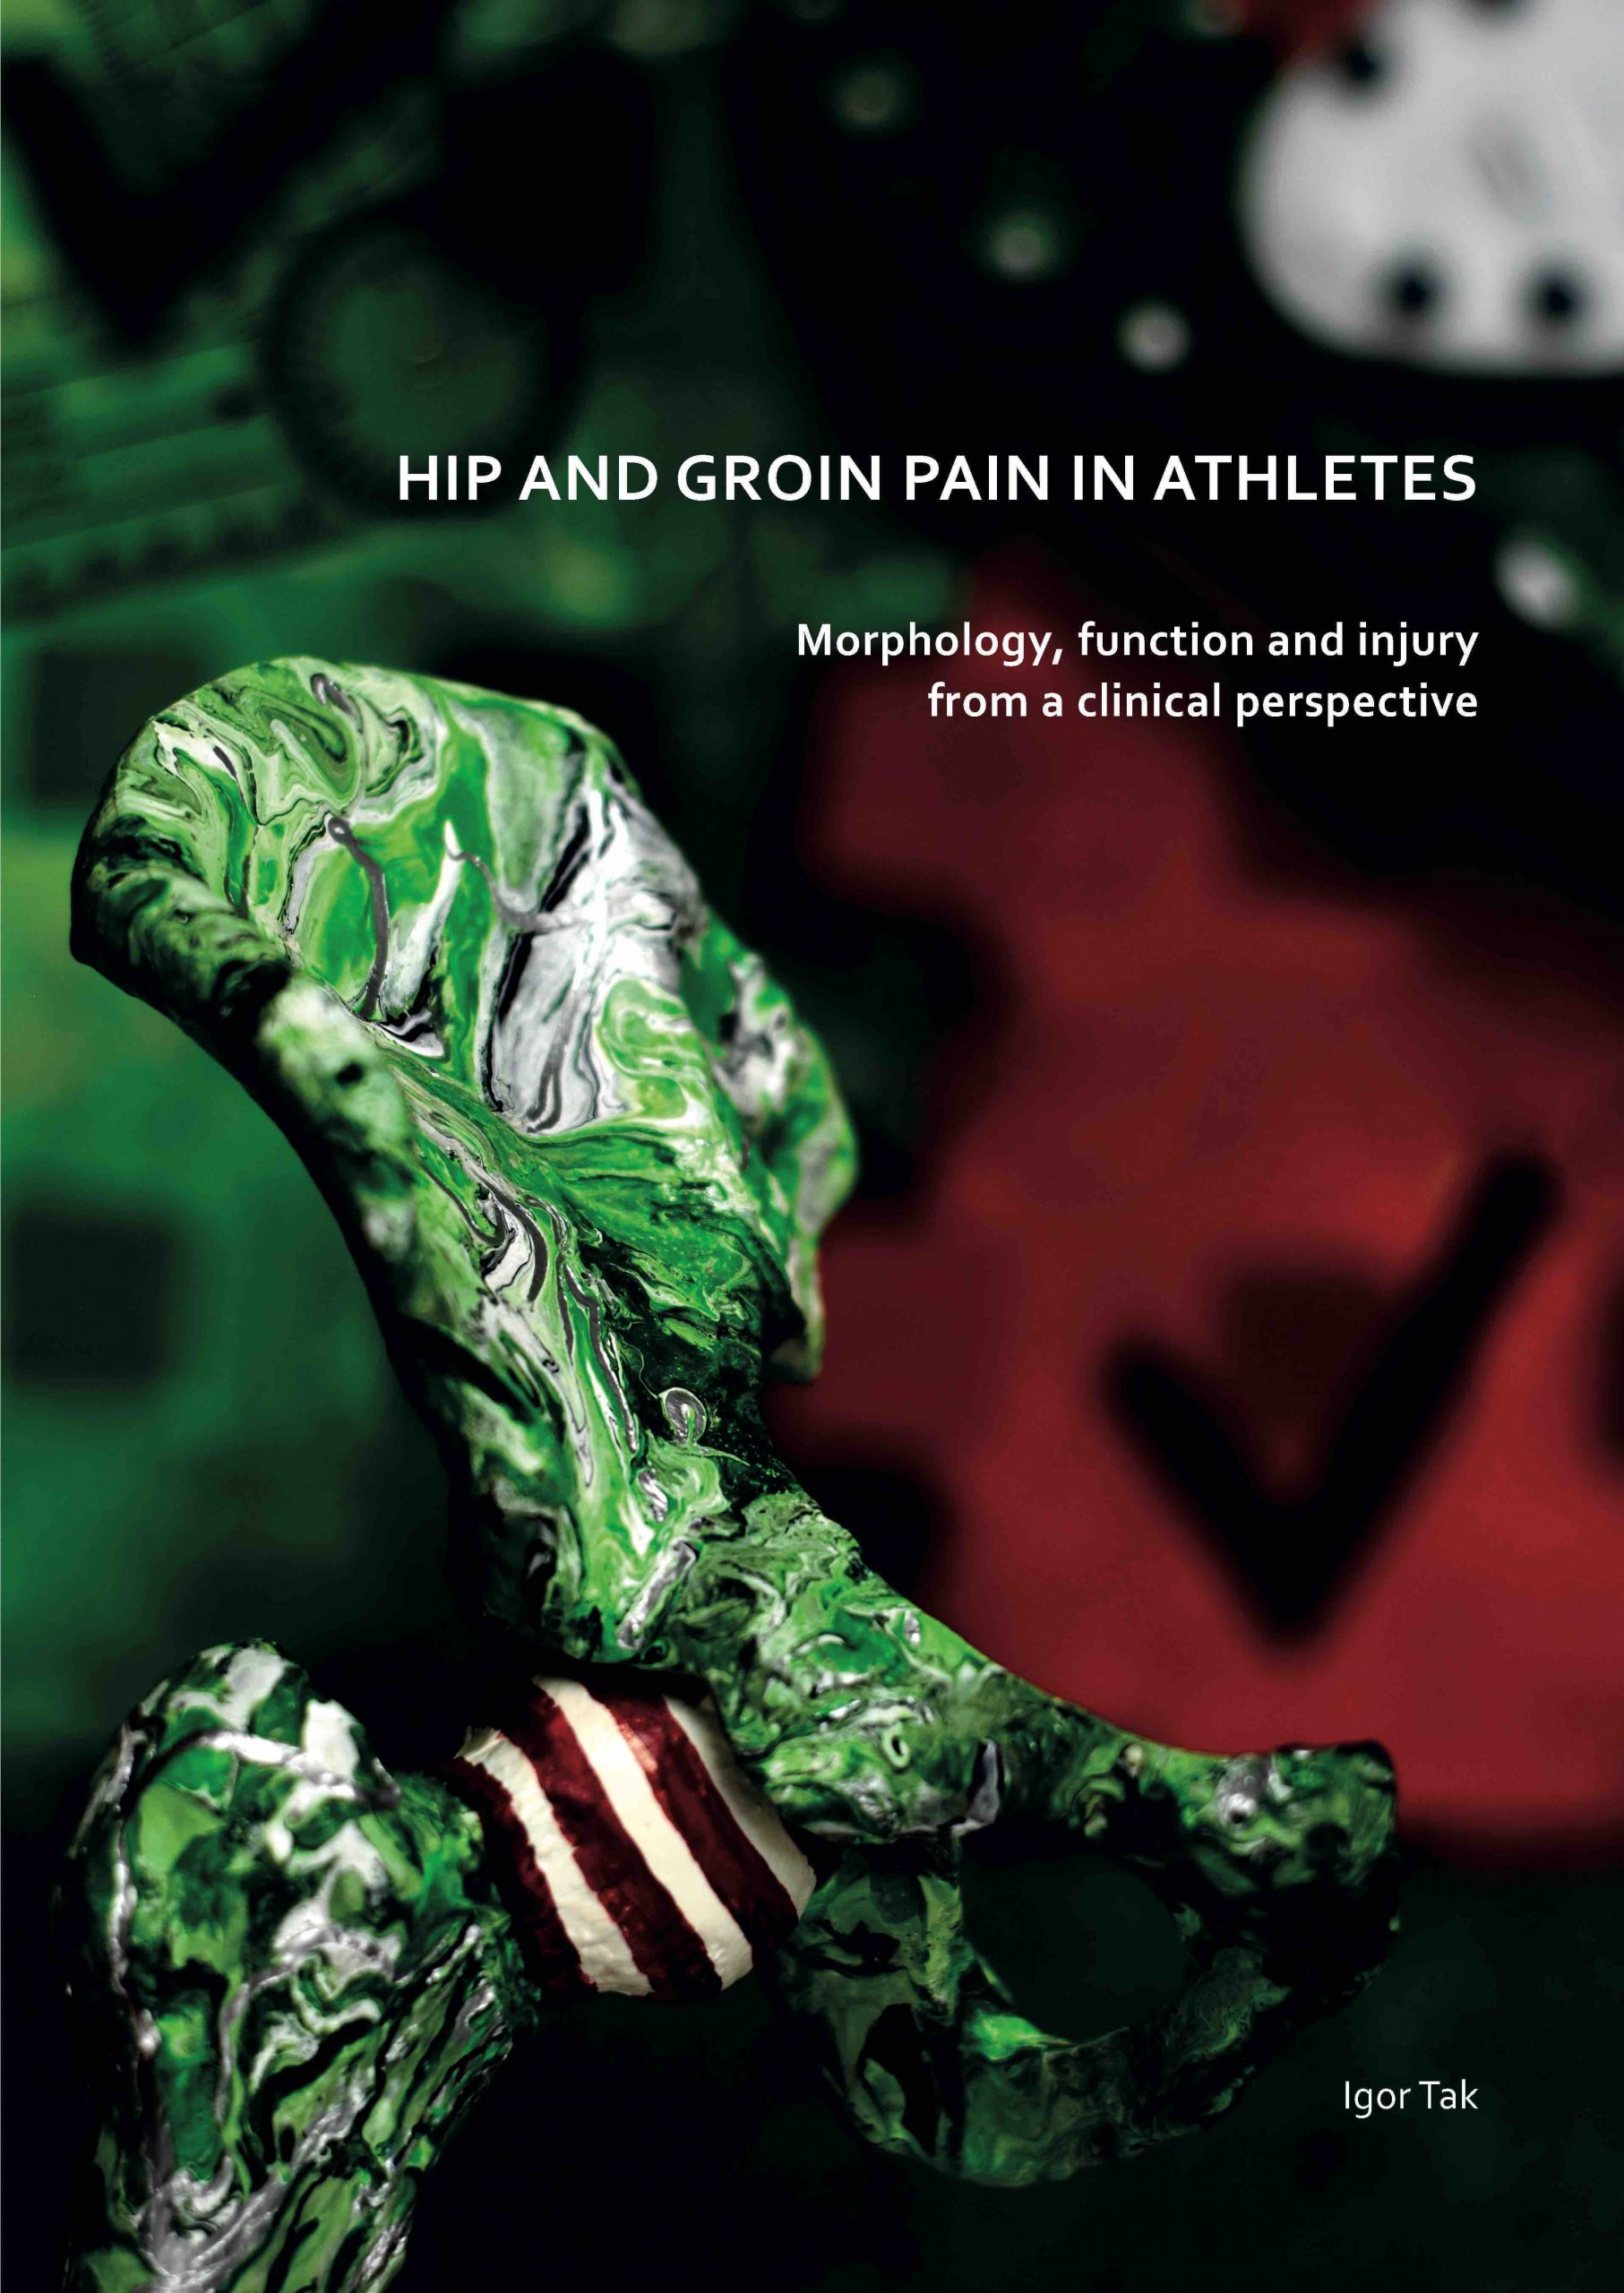 Hip and groin pain in athletes Thesis Igor Tak